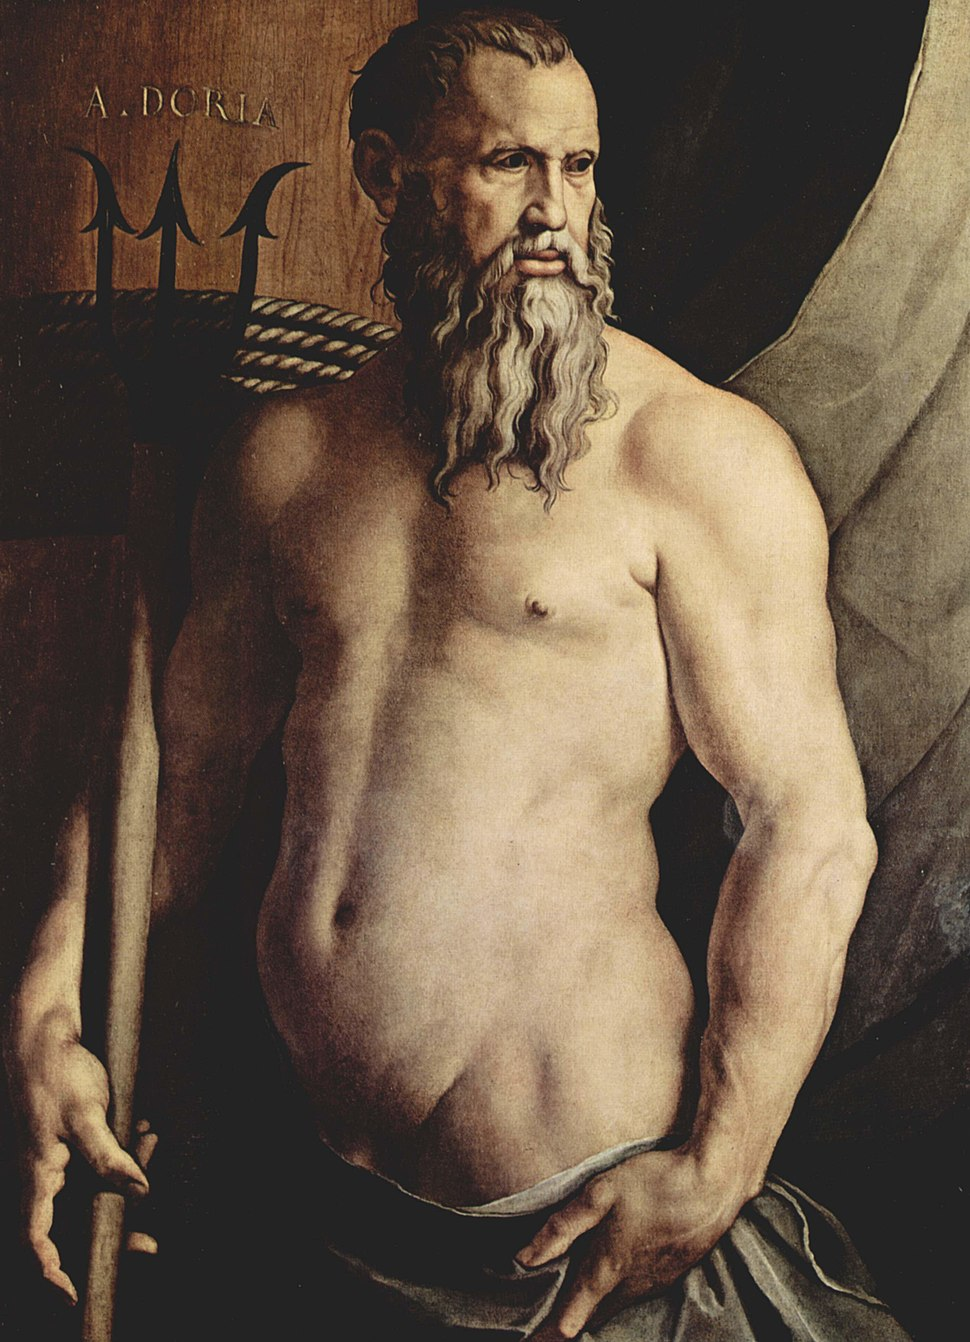 Andrea Doria as Neptun by Angelo Bronzino